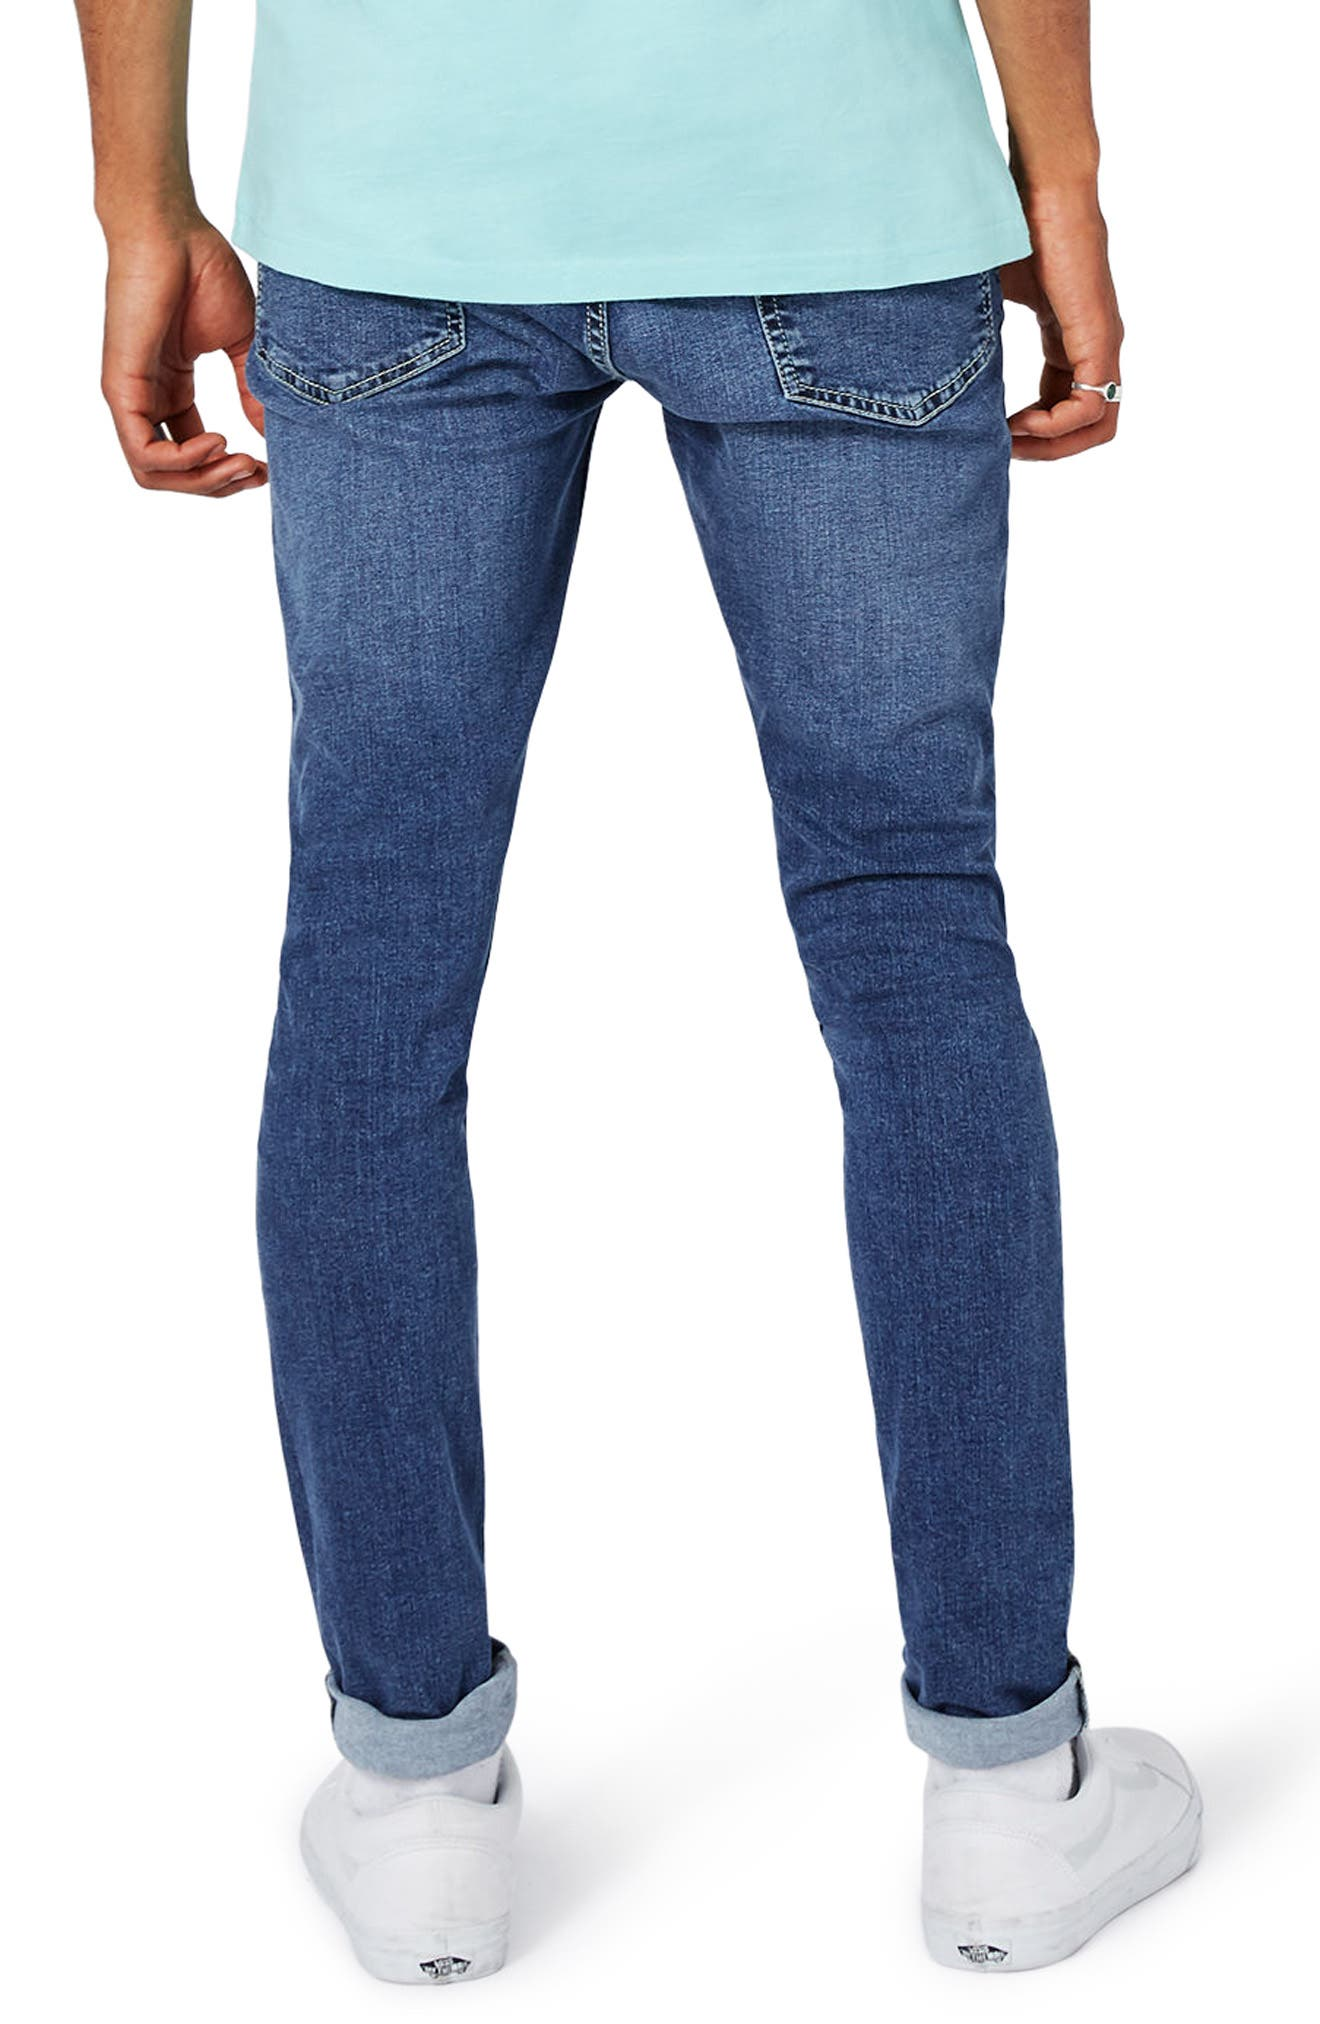 Spray-On Skinny Fit Jeans,                             Alternate thumbnail 2, color,                             400